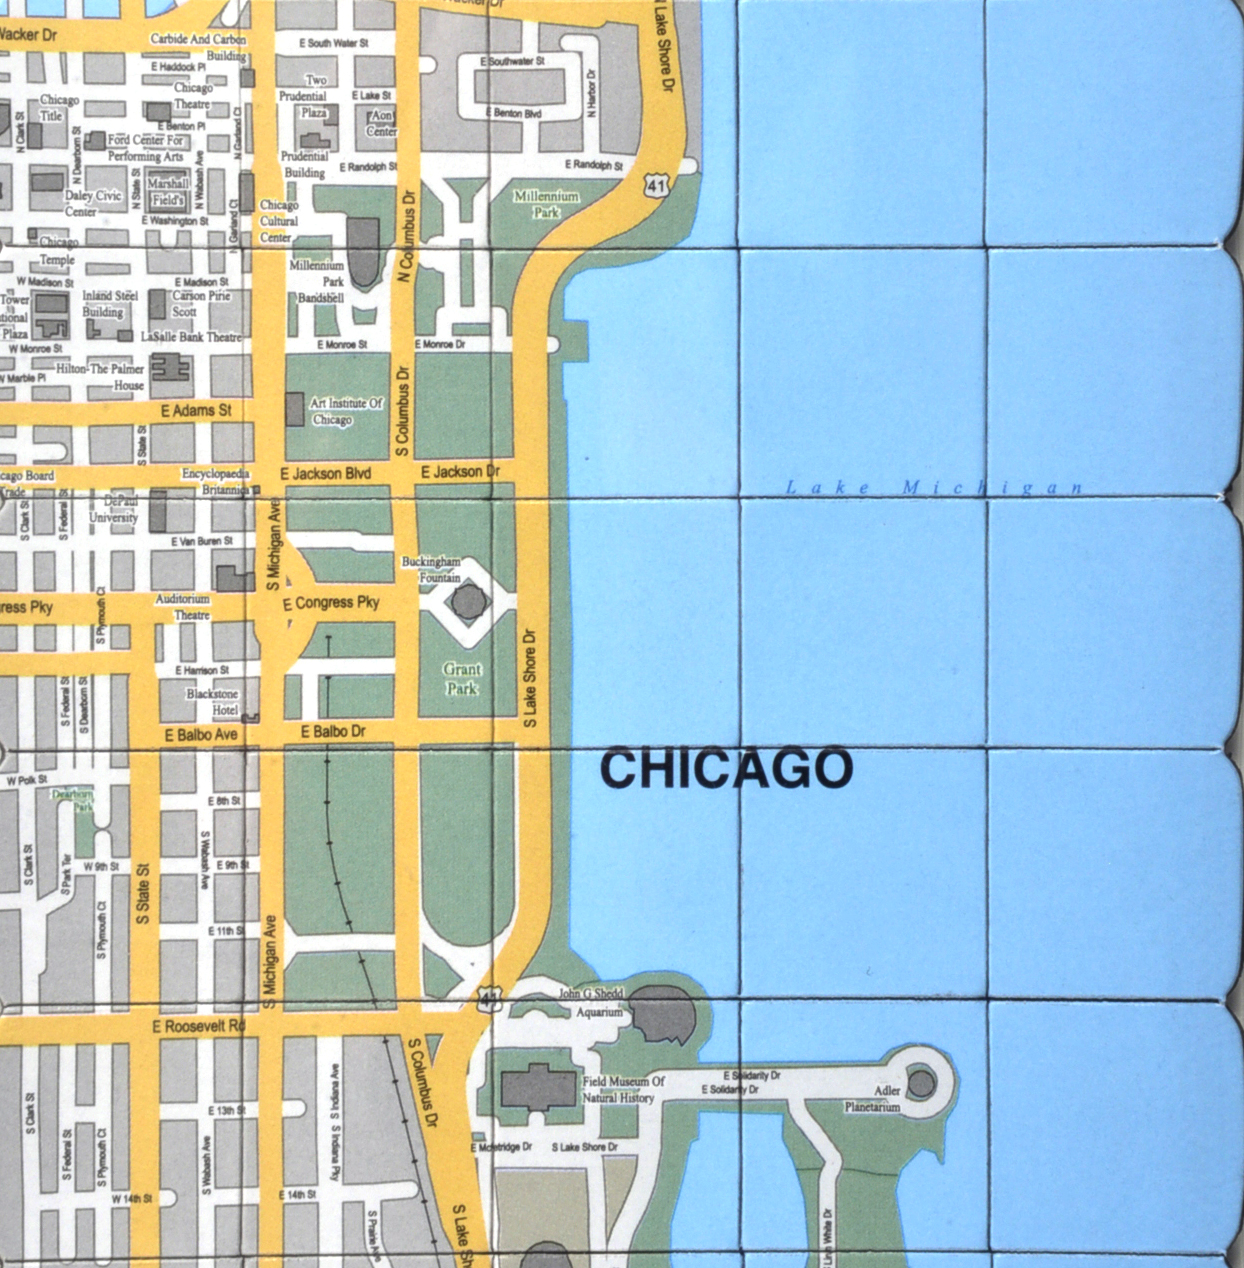 Chicago City Map Fridge Magnet Puzzle Learn The City Map - Chicago map puzzle